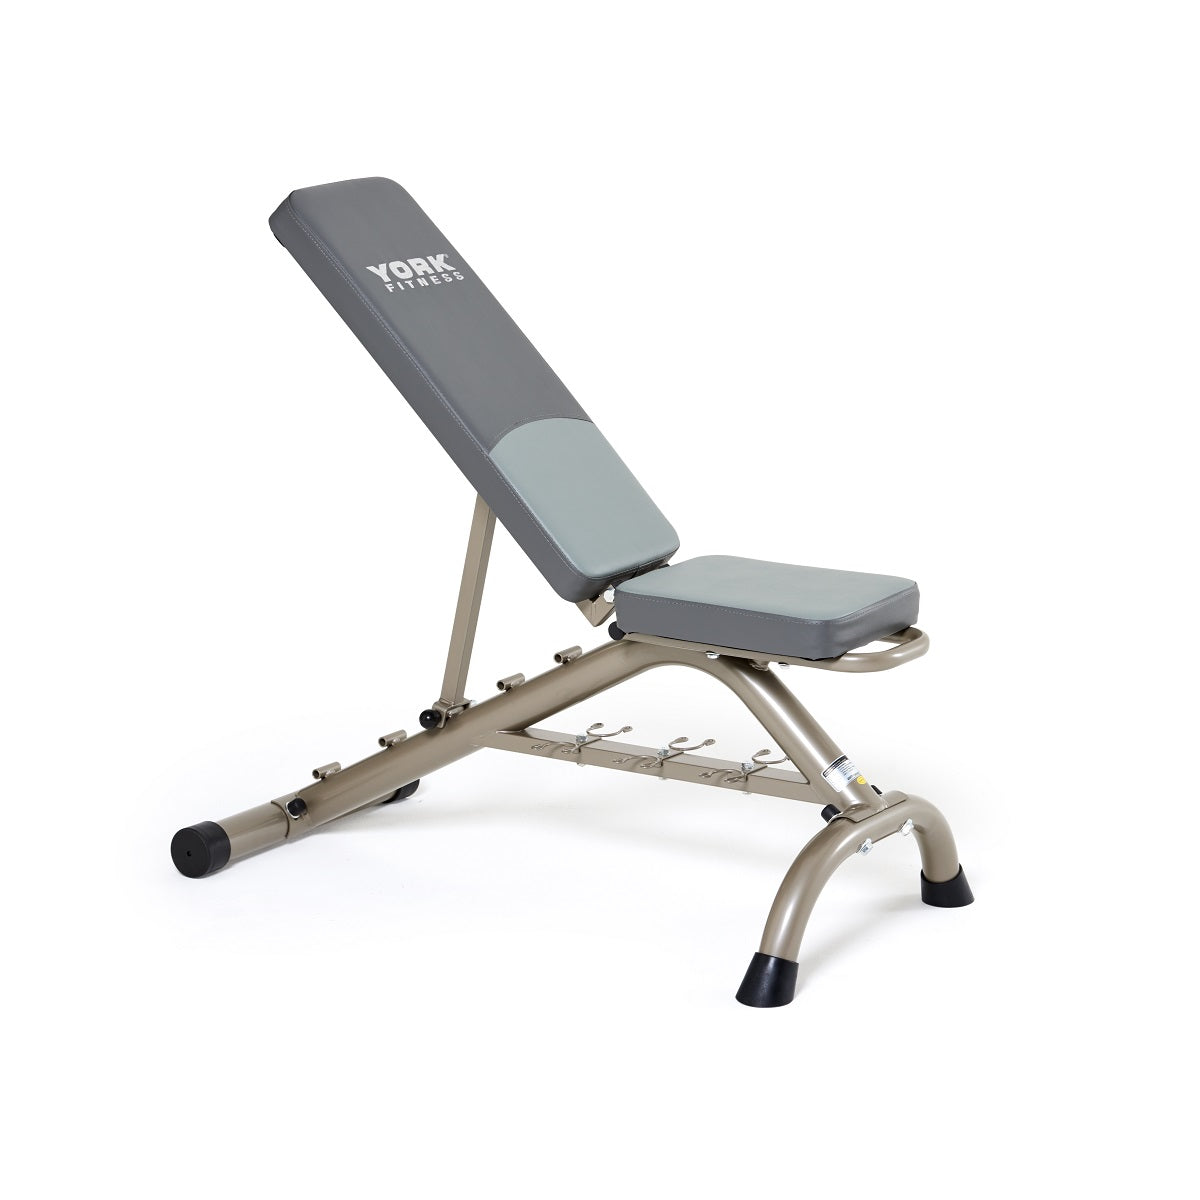 Peachy Weights Benches Dumbbell Bench Barbell Bench Utility Short Links Chair Design For Home Short Linksinfo